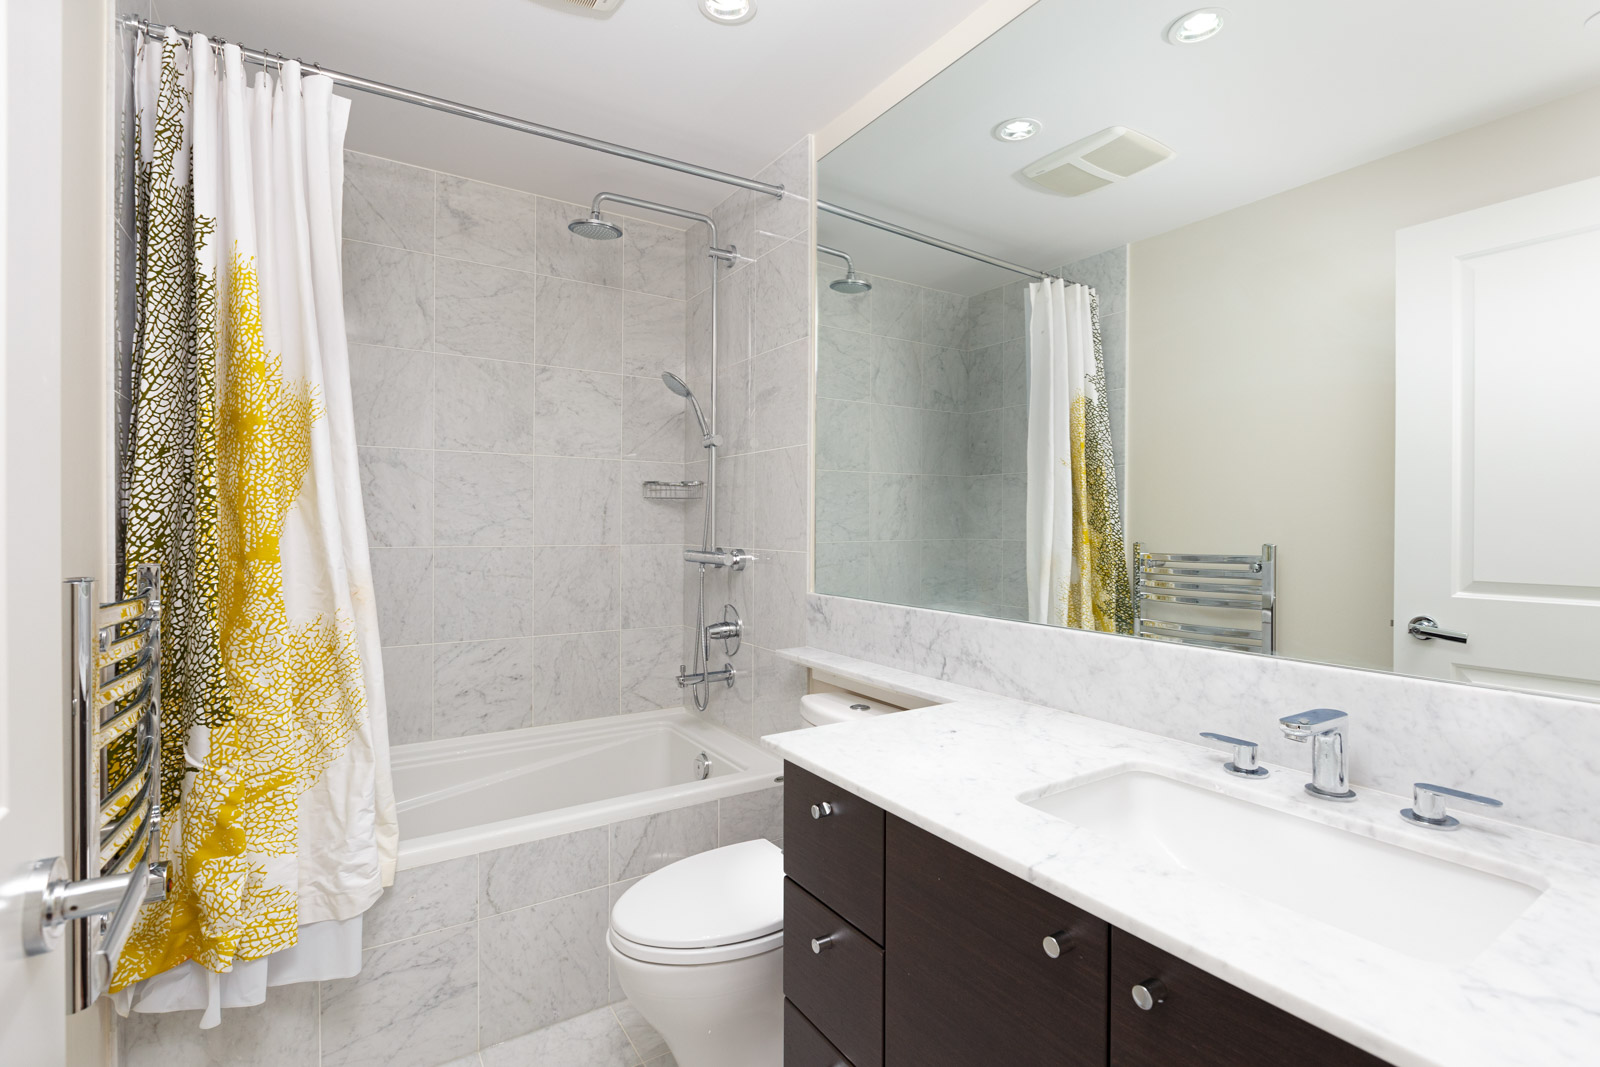 Bathroom in UBC rental condo.